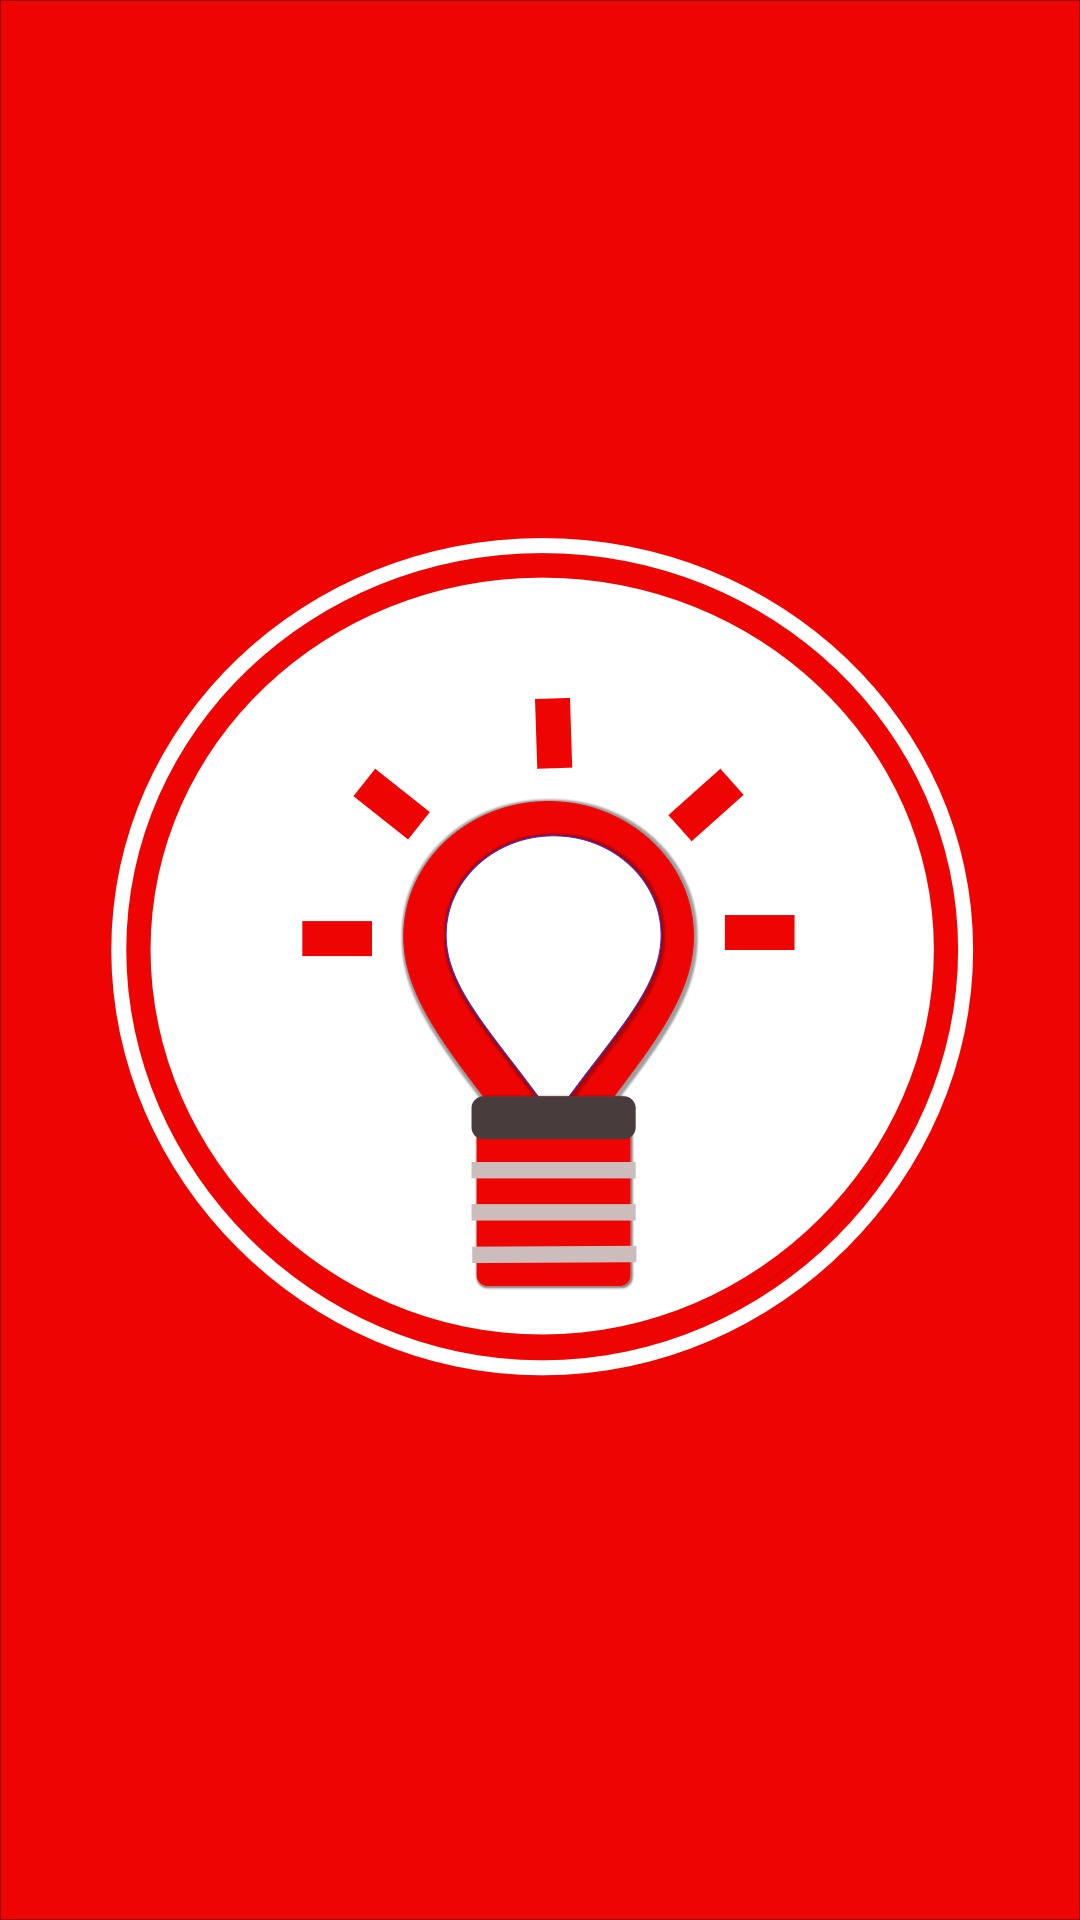 Instagram-cover-lightbulb-red-lotnotes.jpg